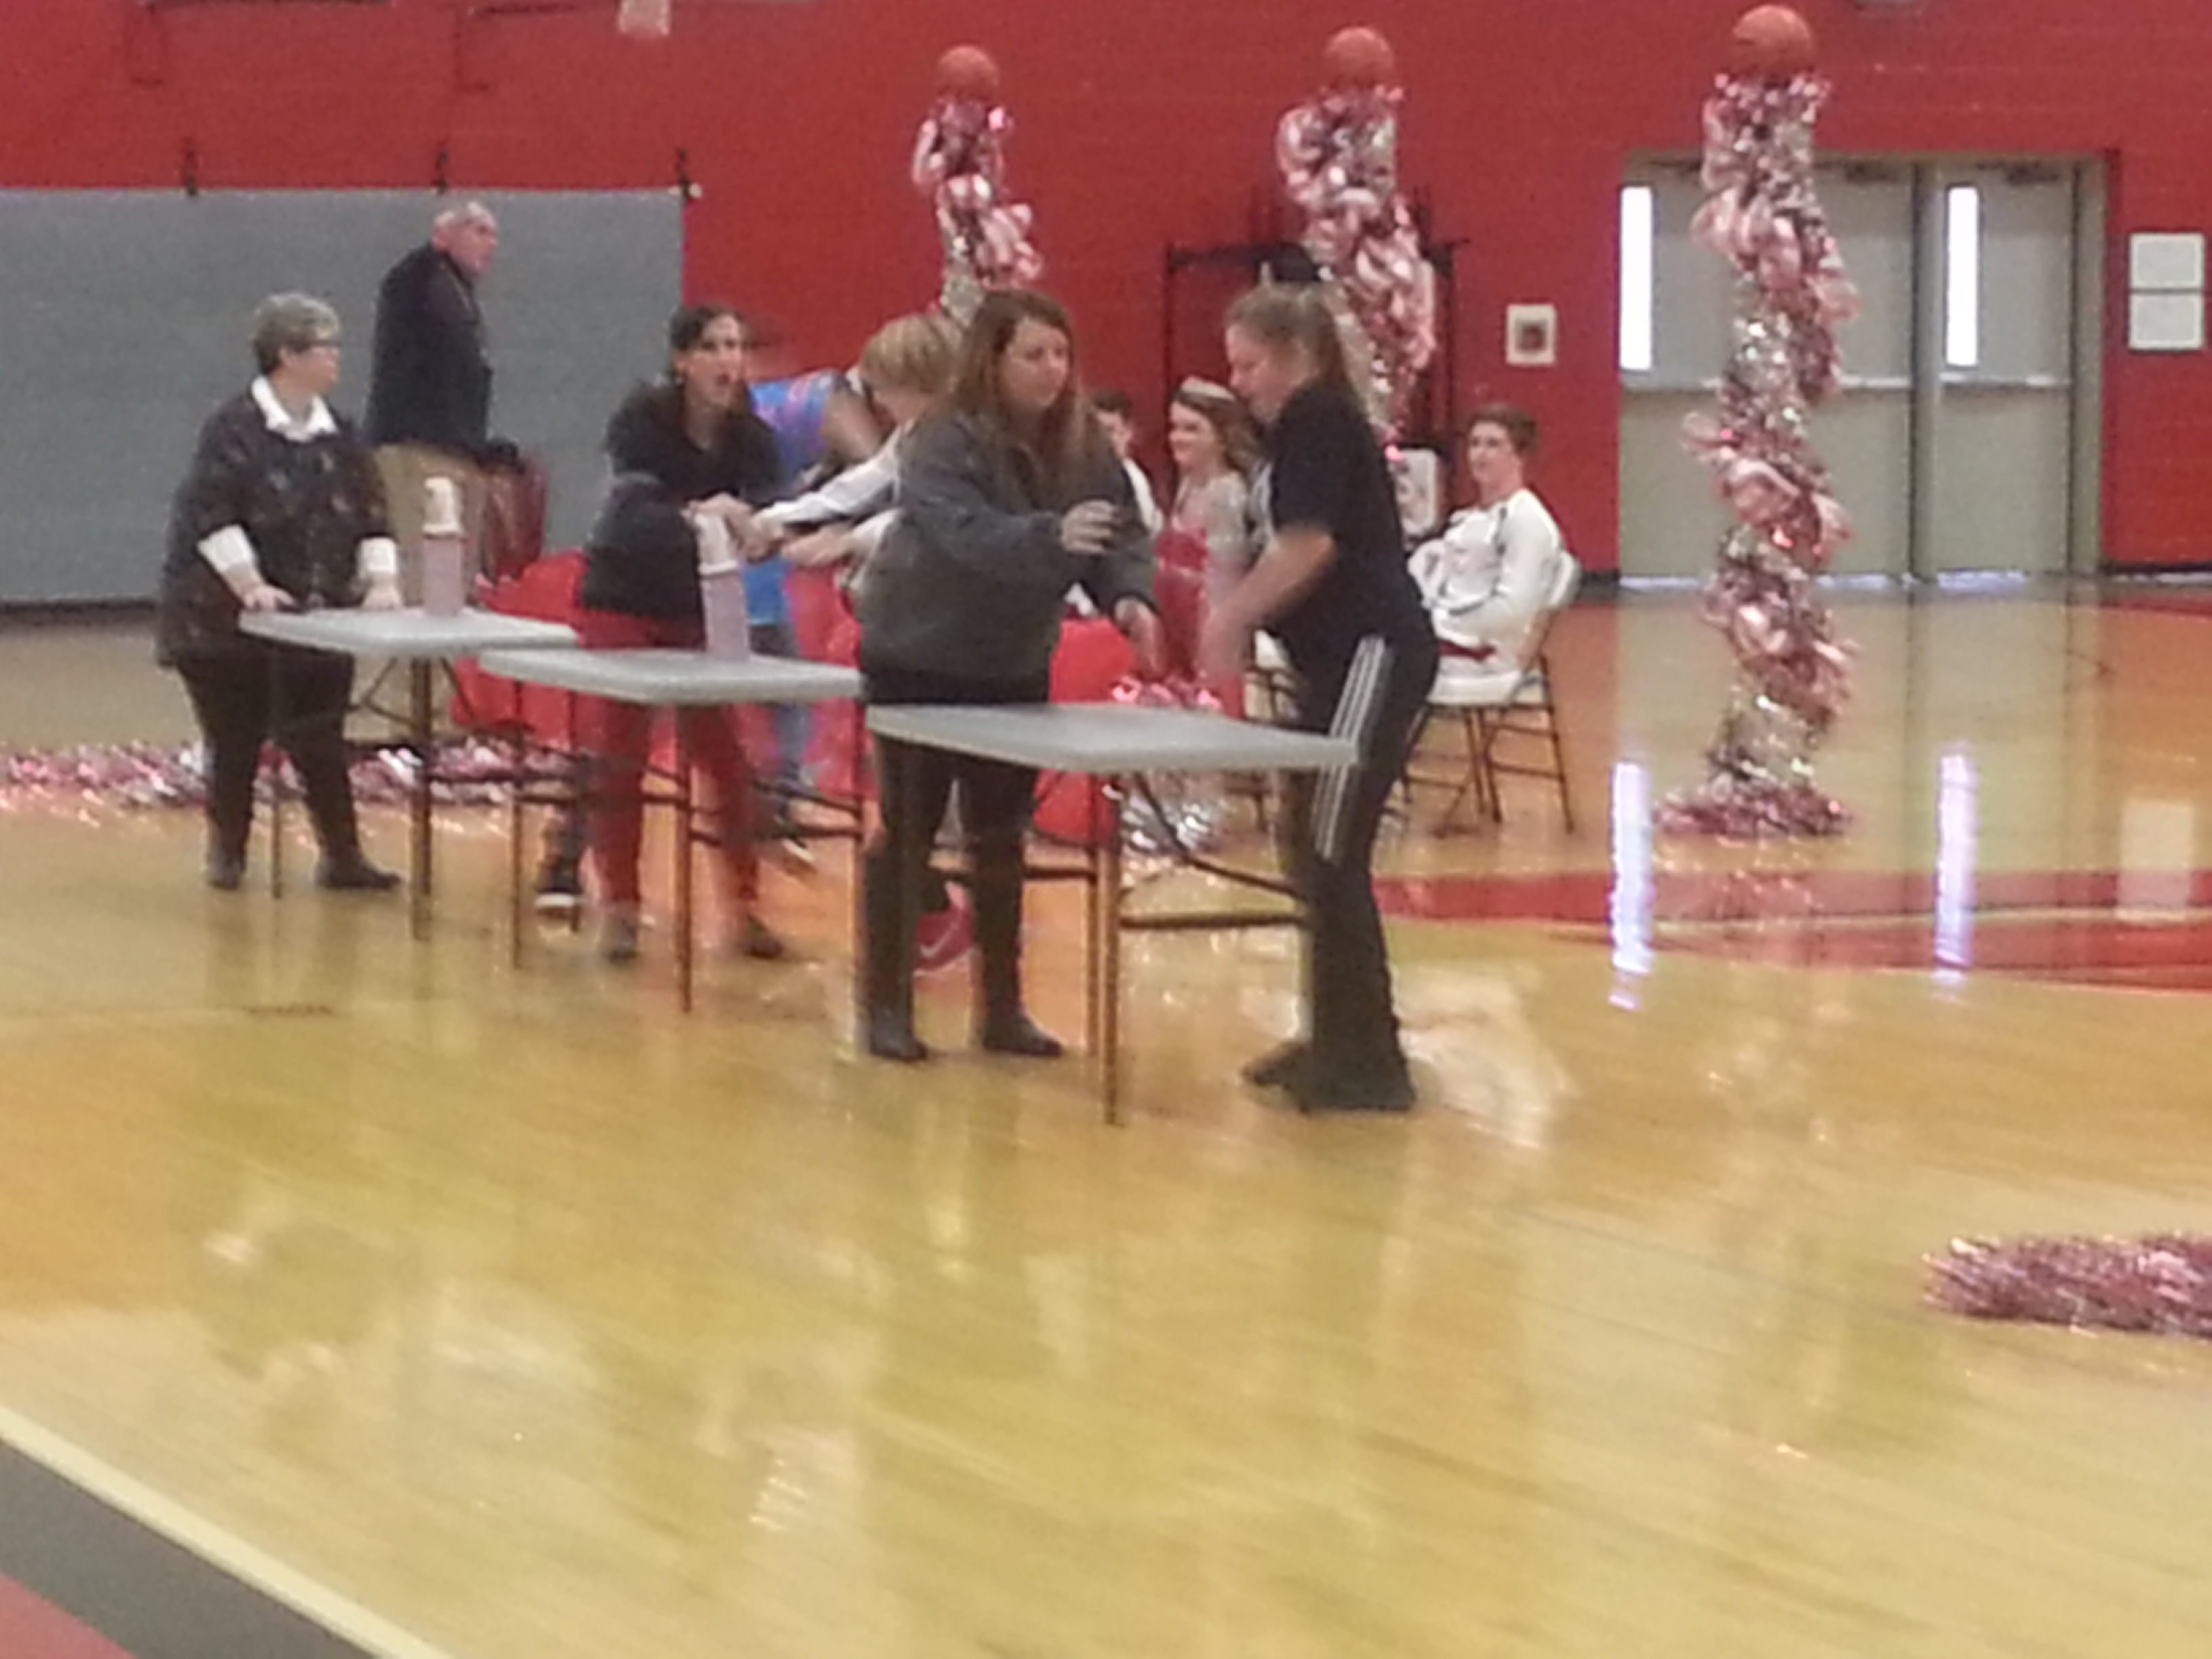 Students Enjoy... participating in the Homecoming Activities.  Here each grade level is competing in a cup stacking game.  (01/08)